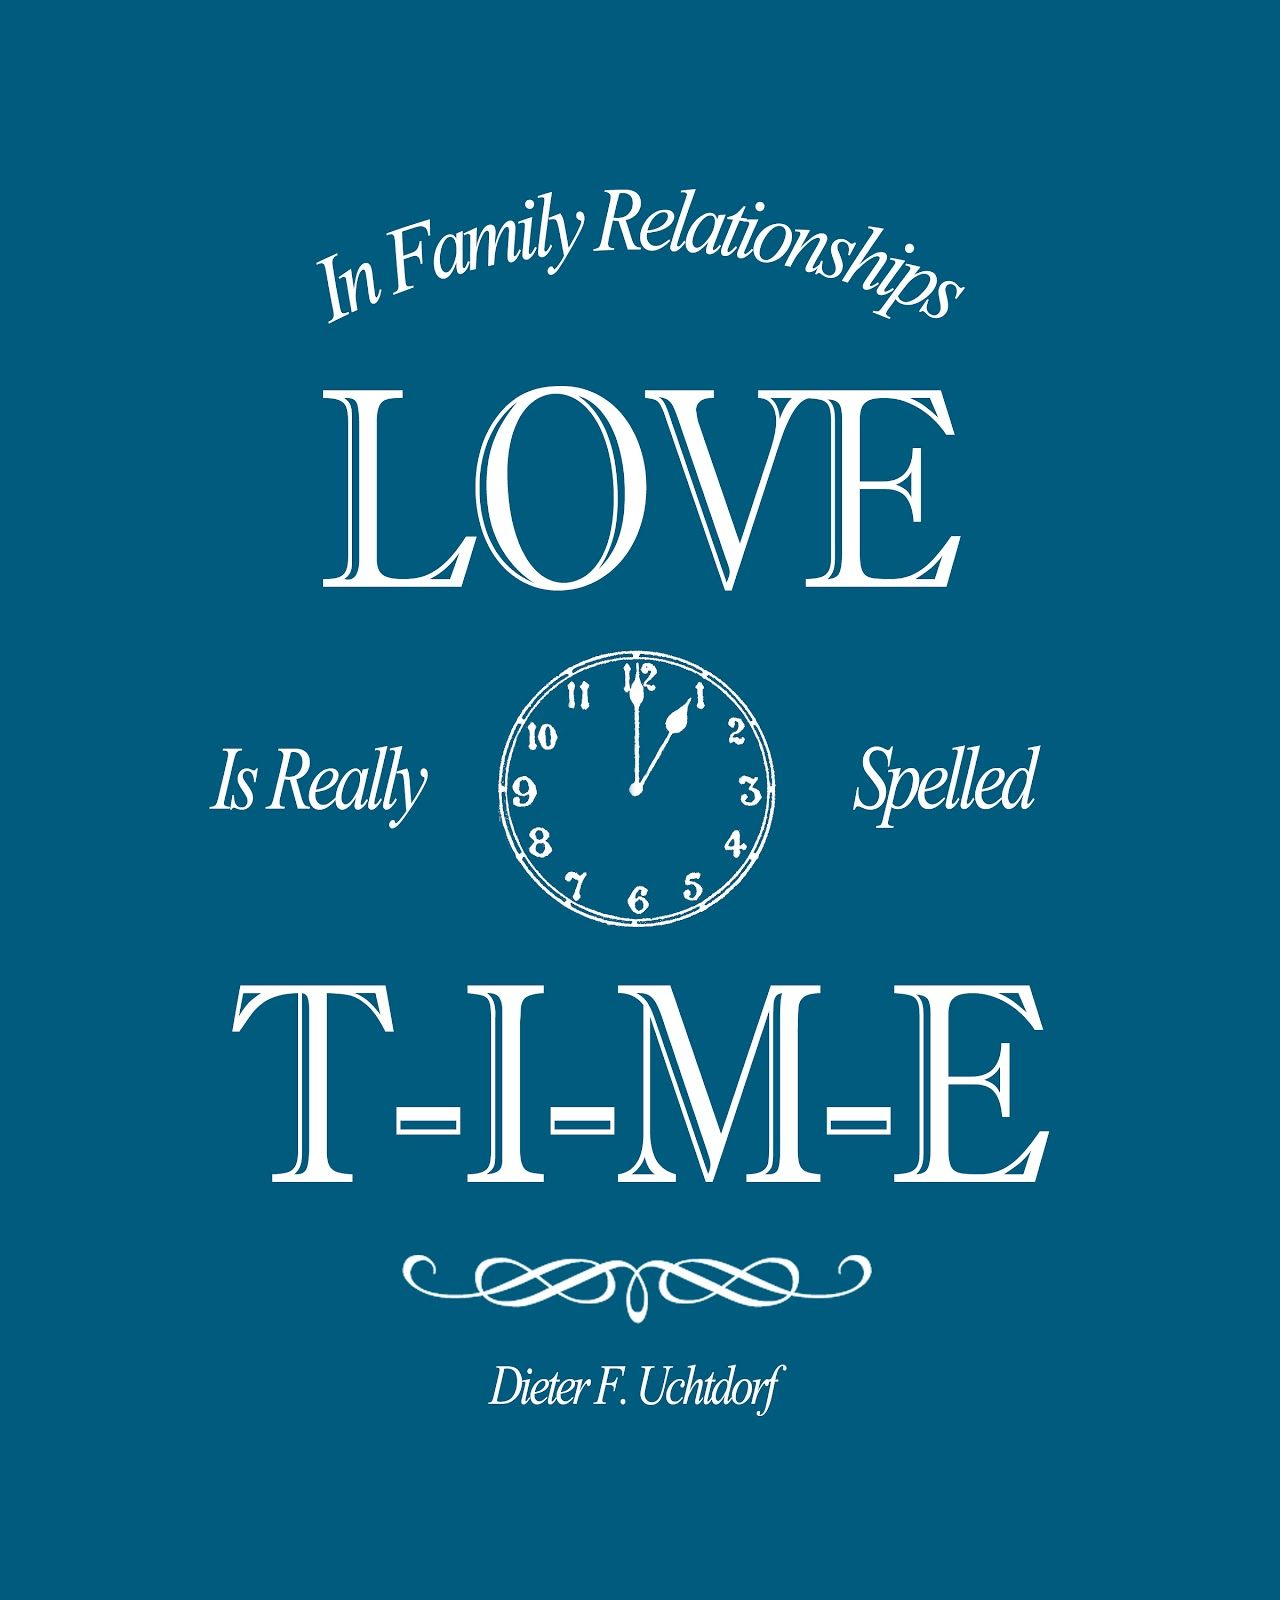 Lds Family Time Quotes Google Search Family T Shirts Pinterest